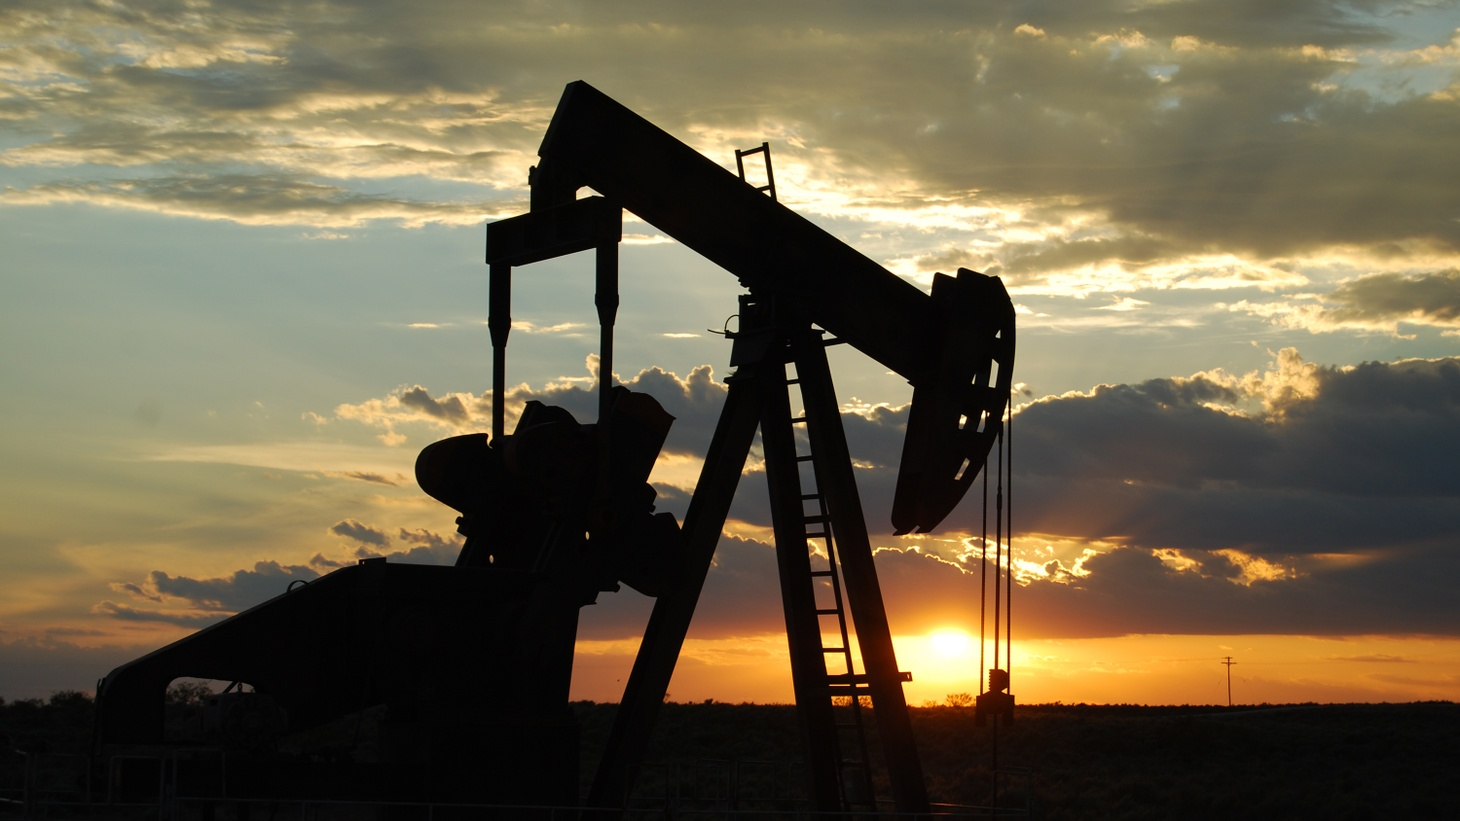 The price of oil has dropped like a stone in the past few months, and the price of gasoline is going down along with it. While it's good news for drivers -- at least for the moment, is it a sign of long-term weakness in the oil economy?